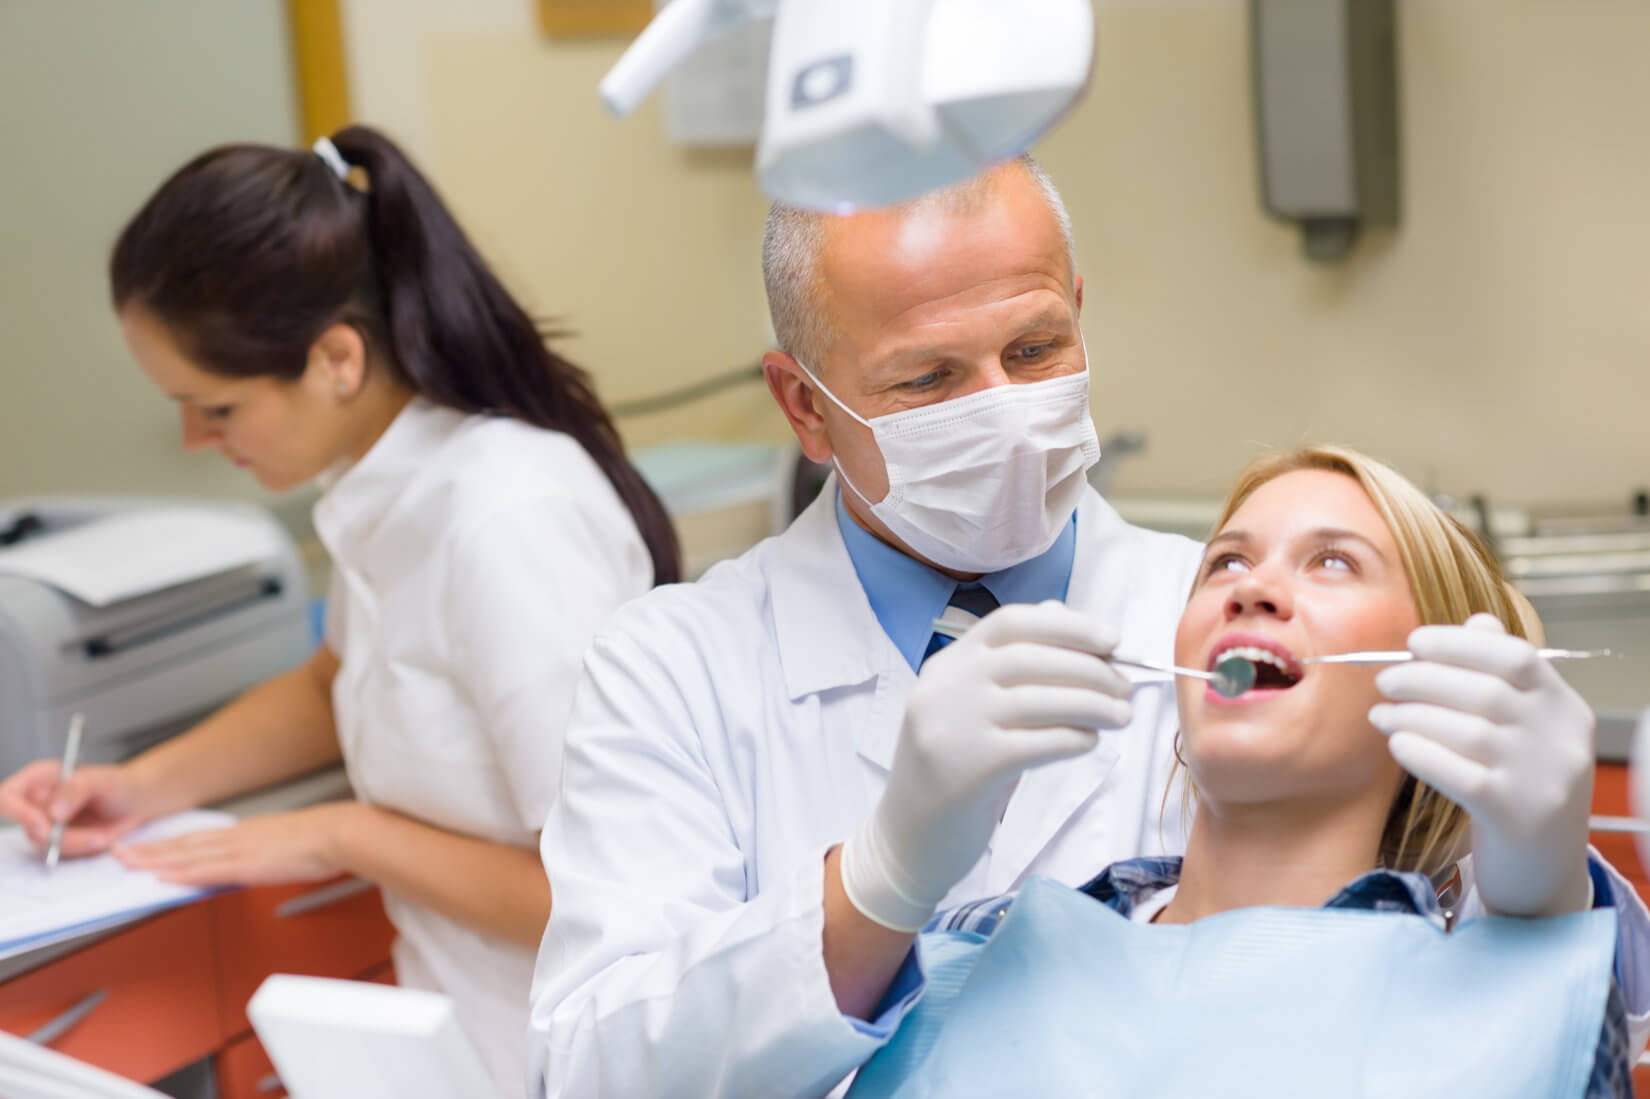 ILS training course via e-learning, suitable for dentists